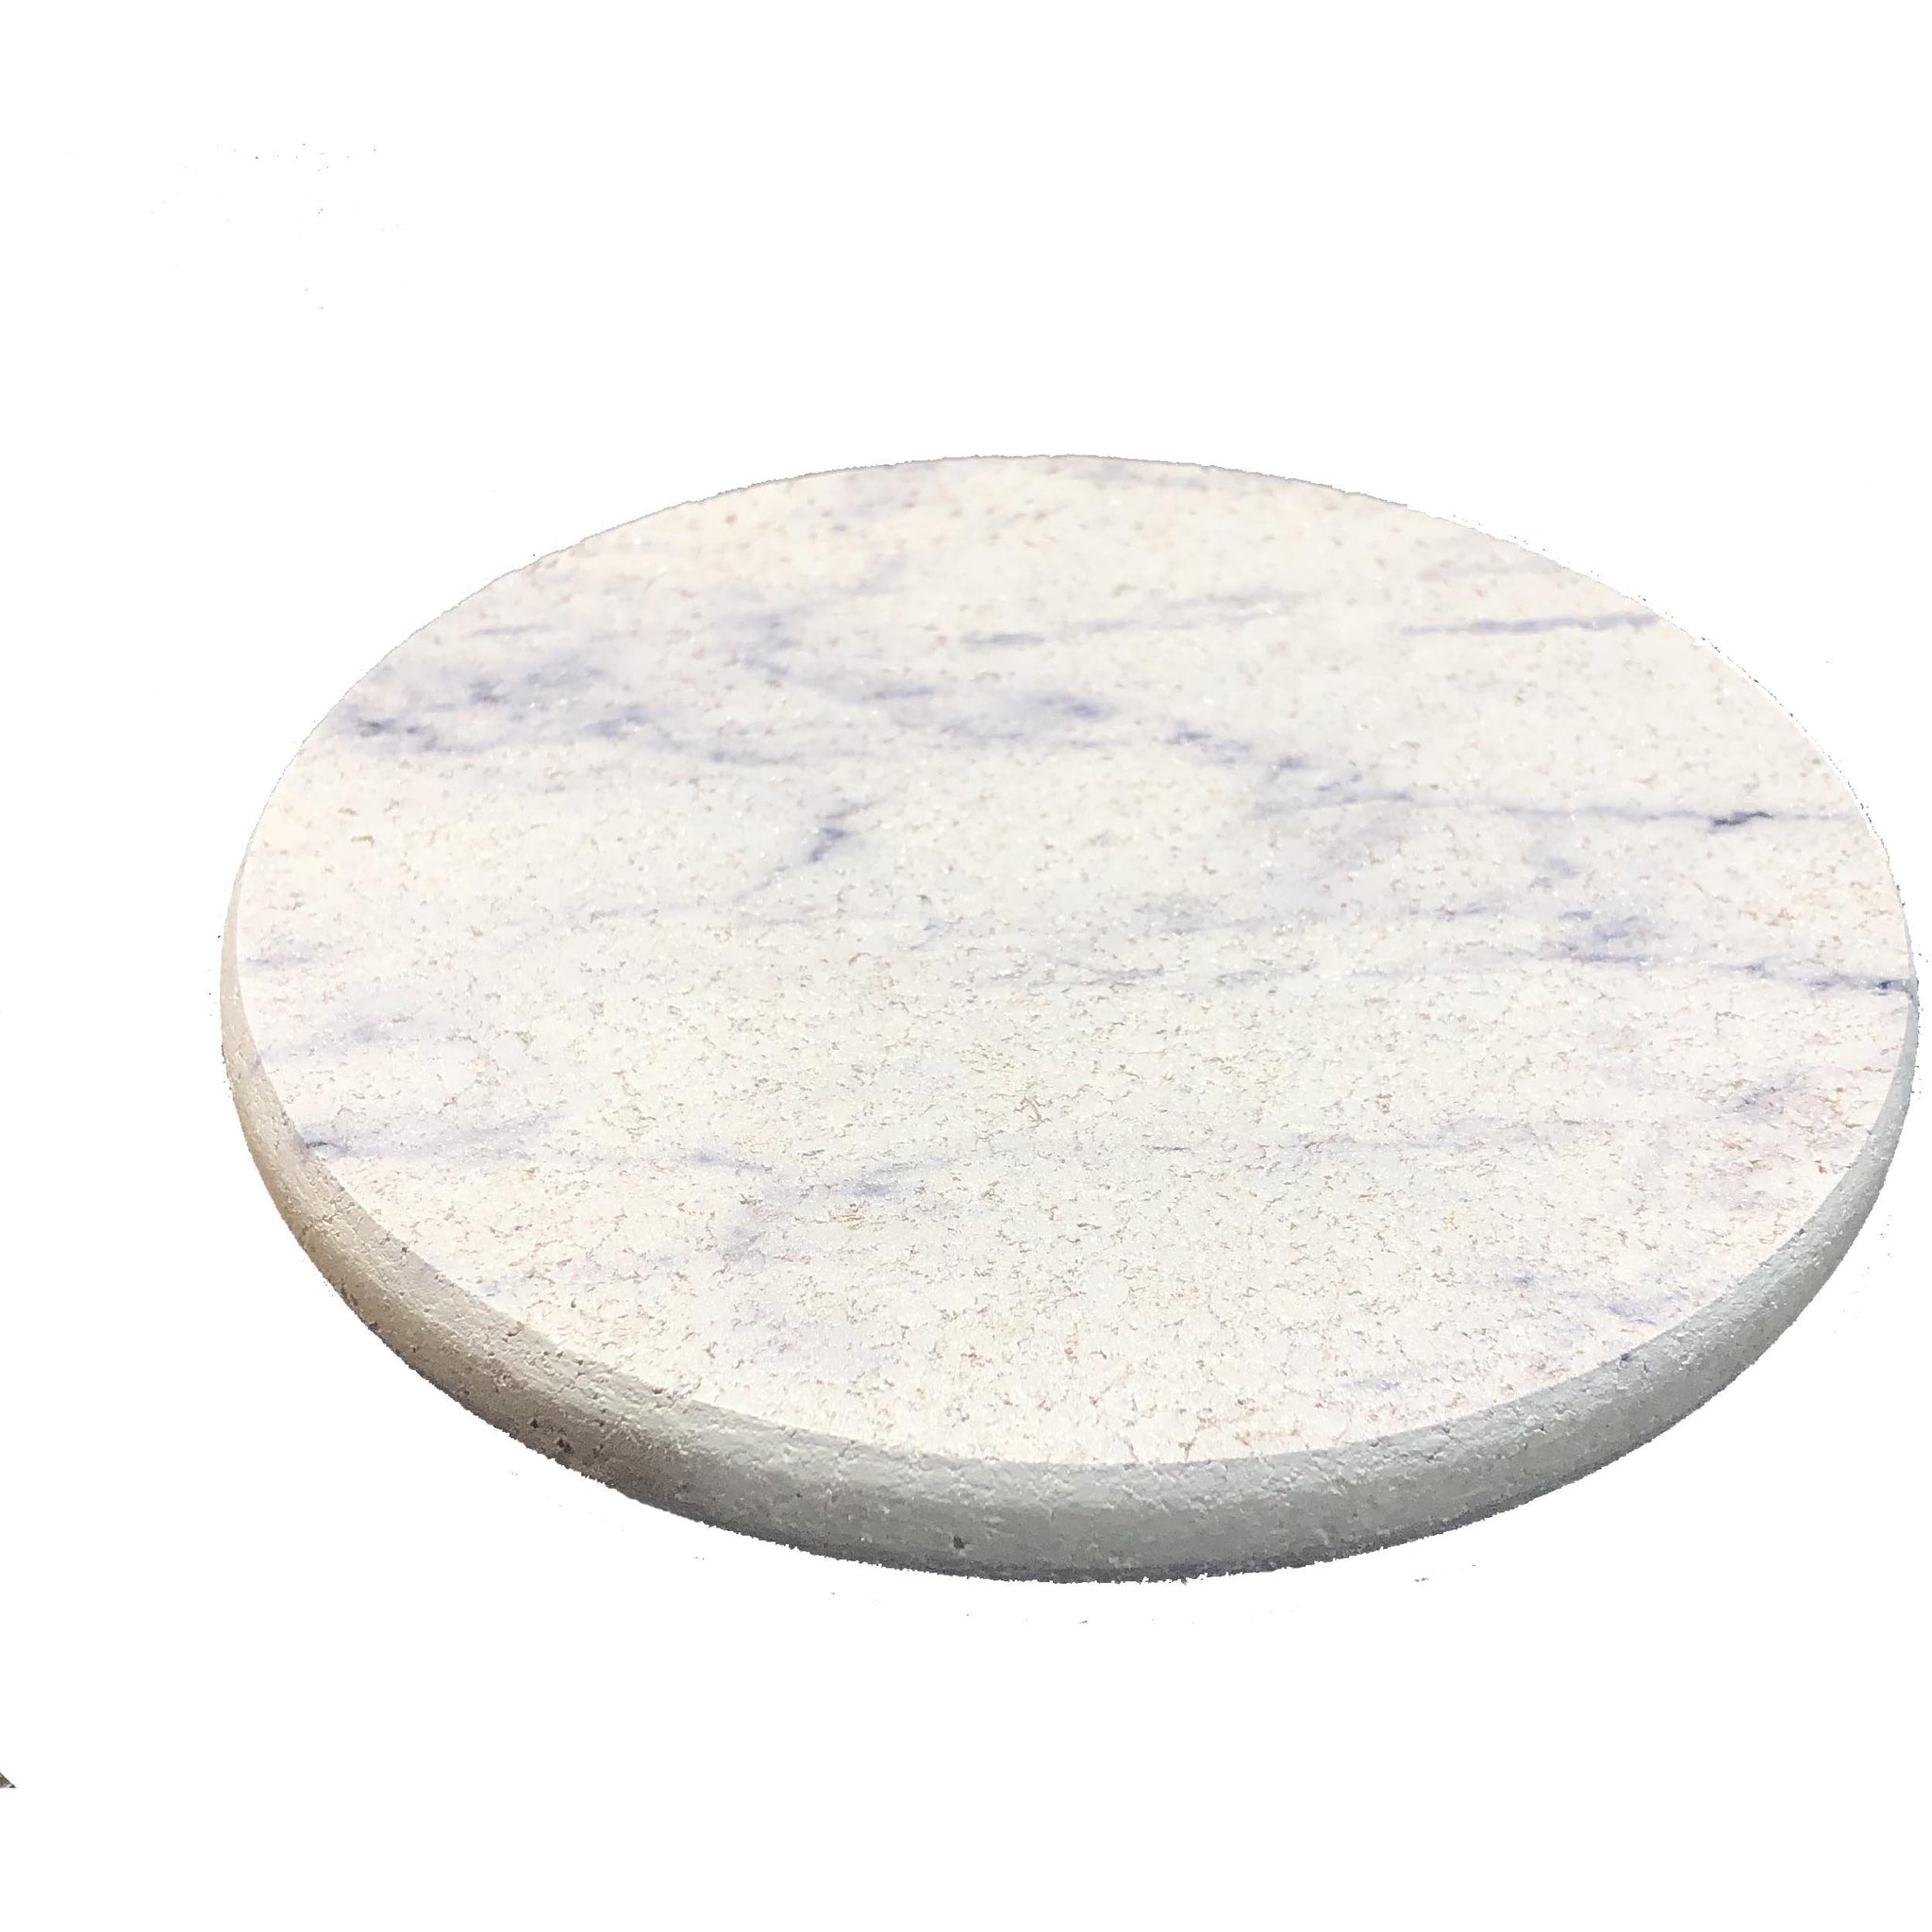 MARBLE CORK TRIVETS & COASTERS